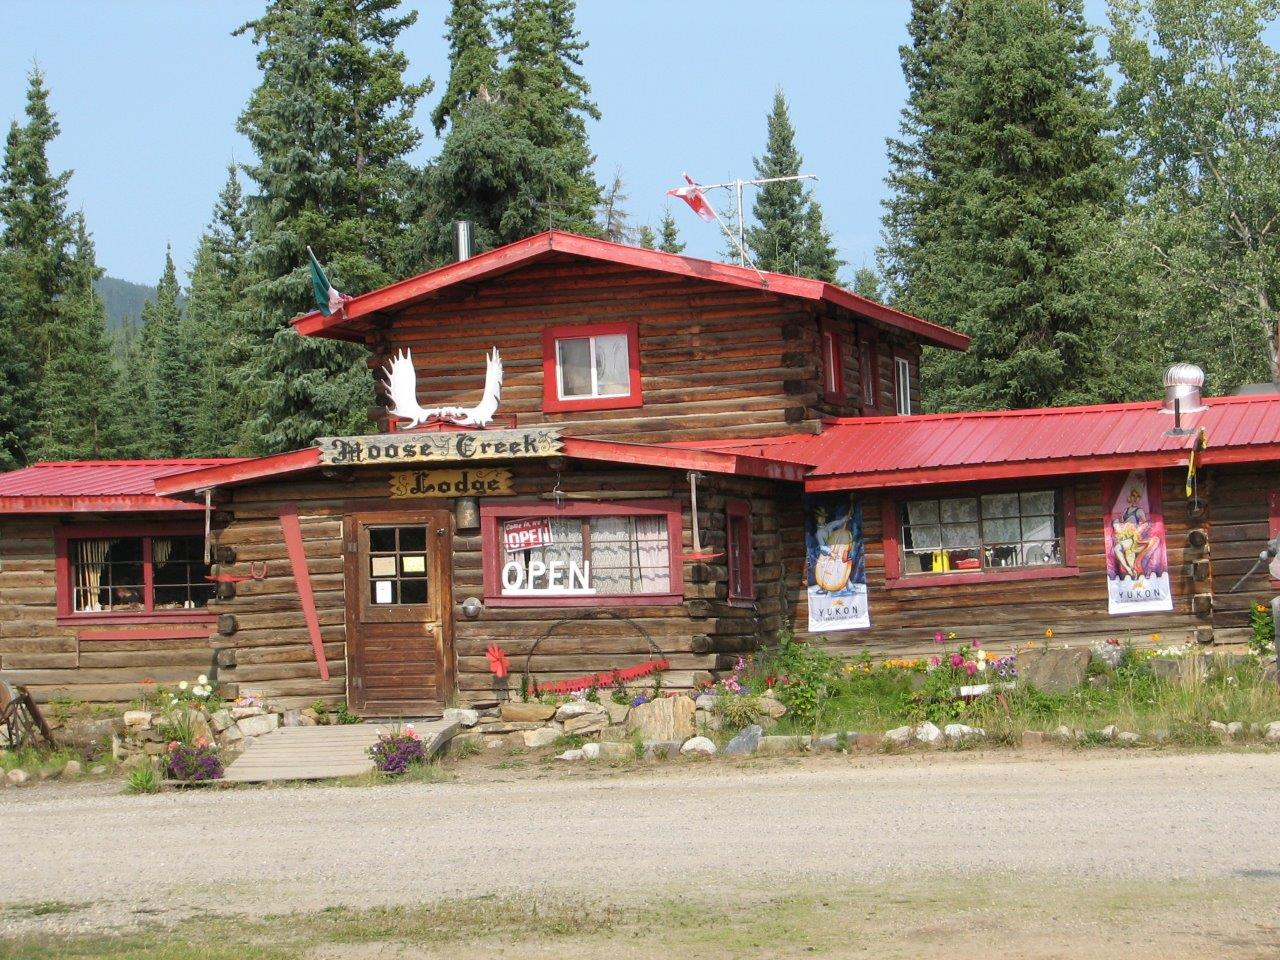 Dawson City Moose Creek Lodge